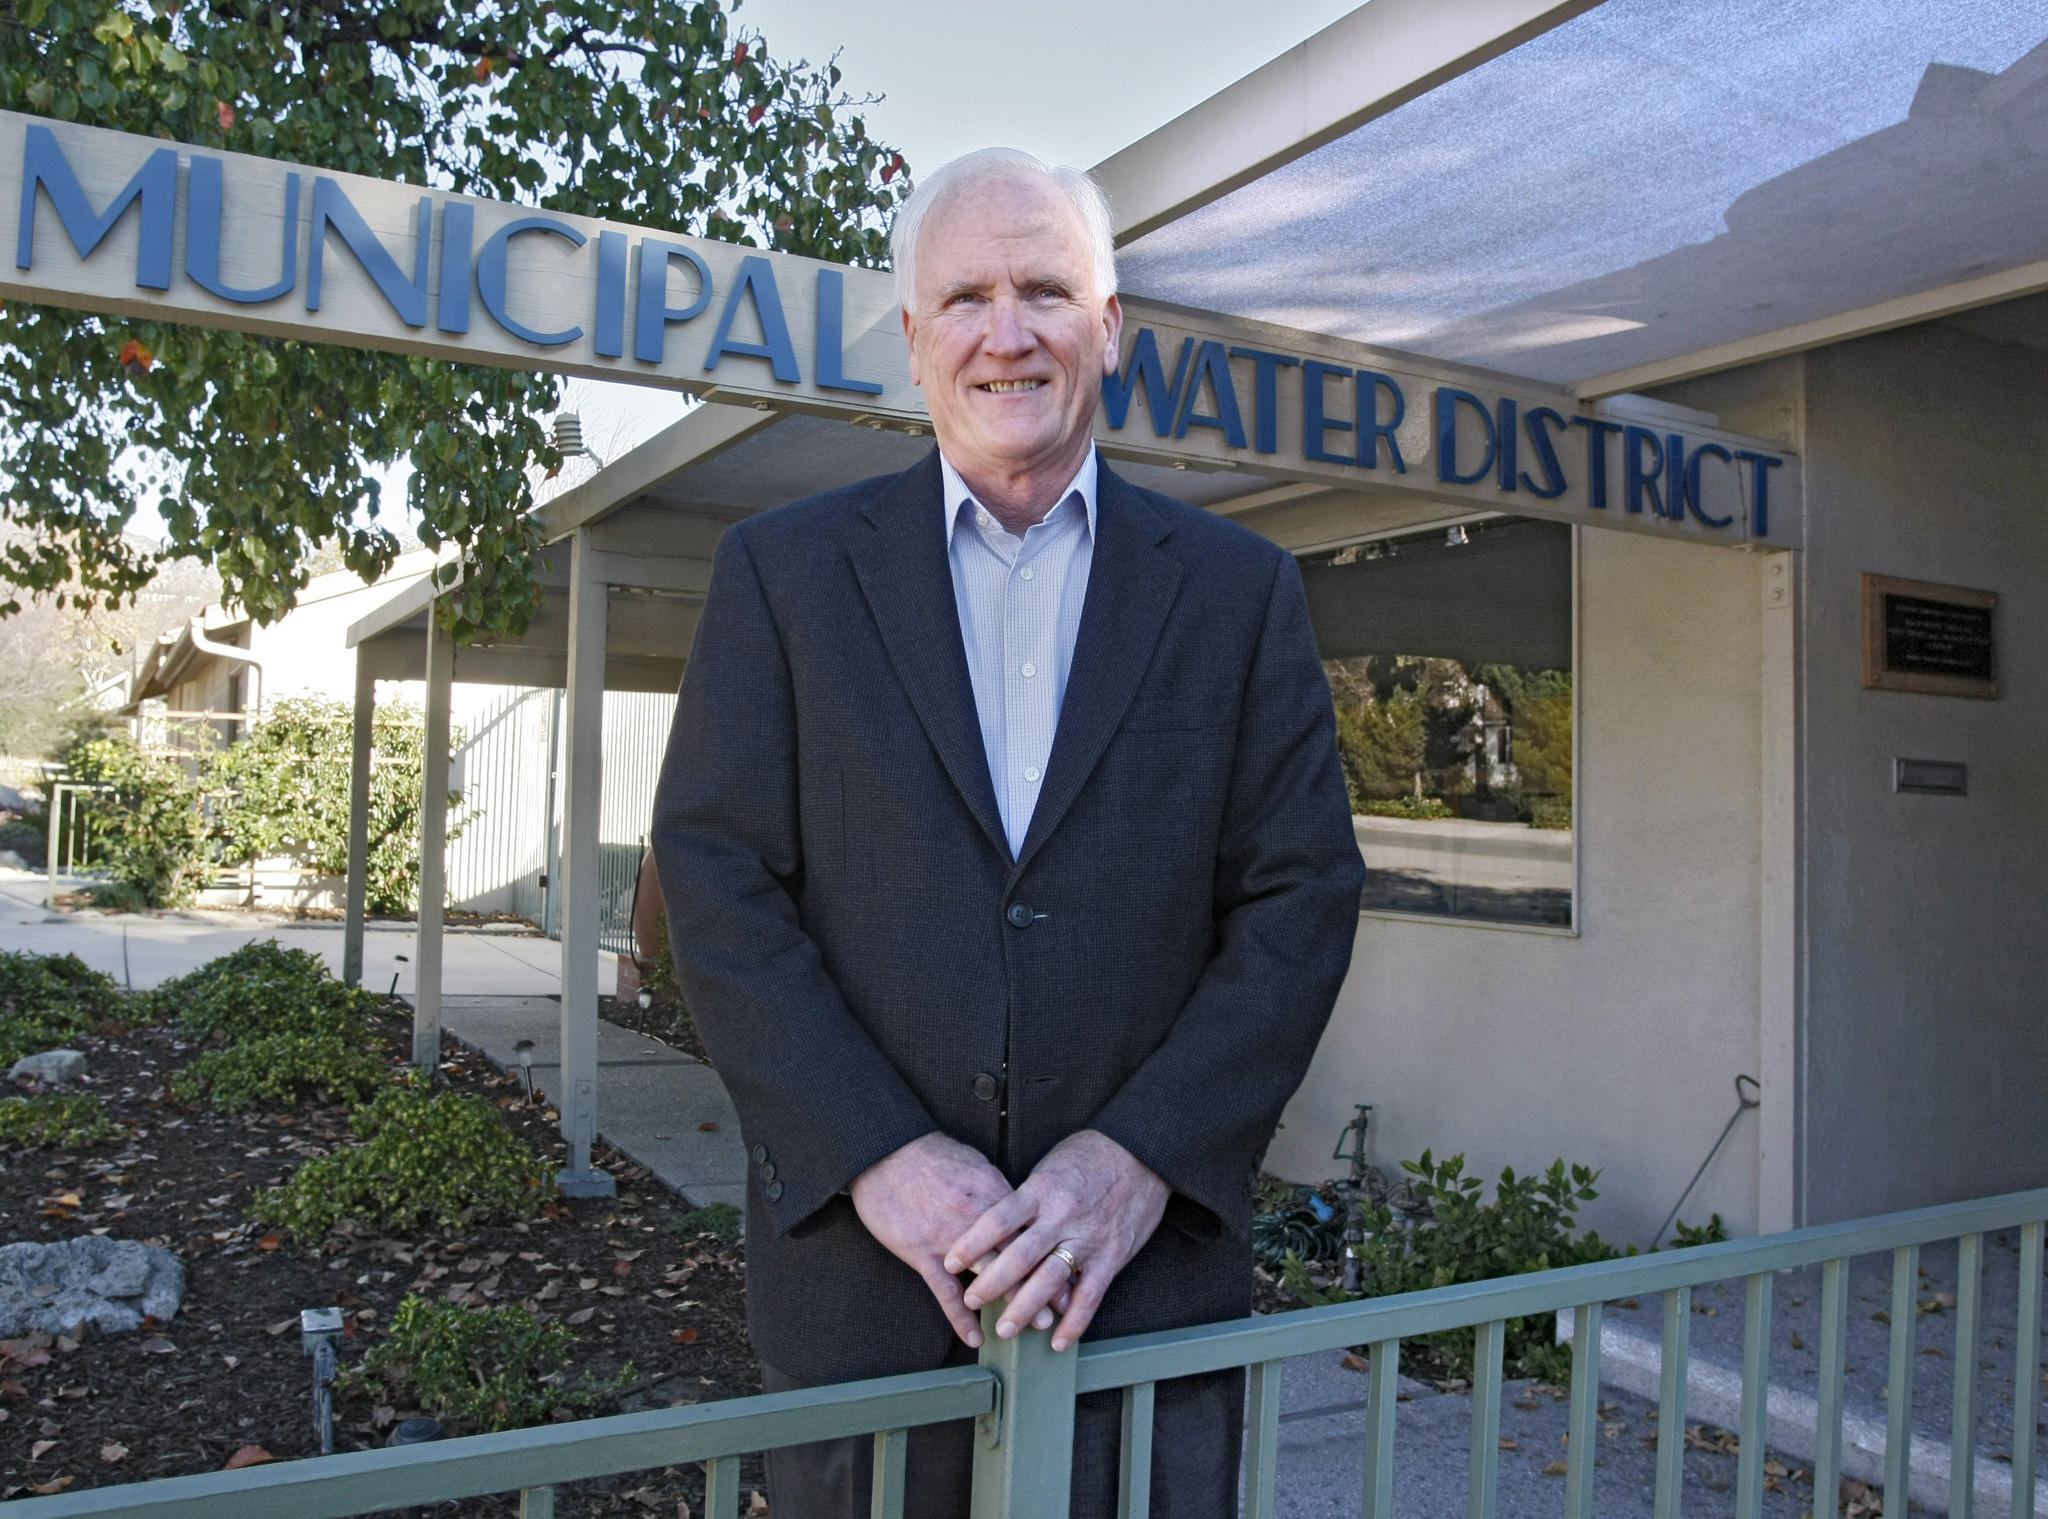 Foothill Municipal Water District board president Richard Atwater in front of the district's office in La Cañada Flintridge on Wednesday, Jan. 15, 2014.